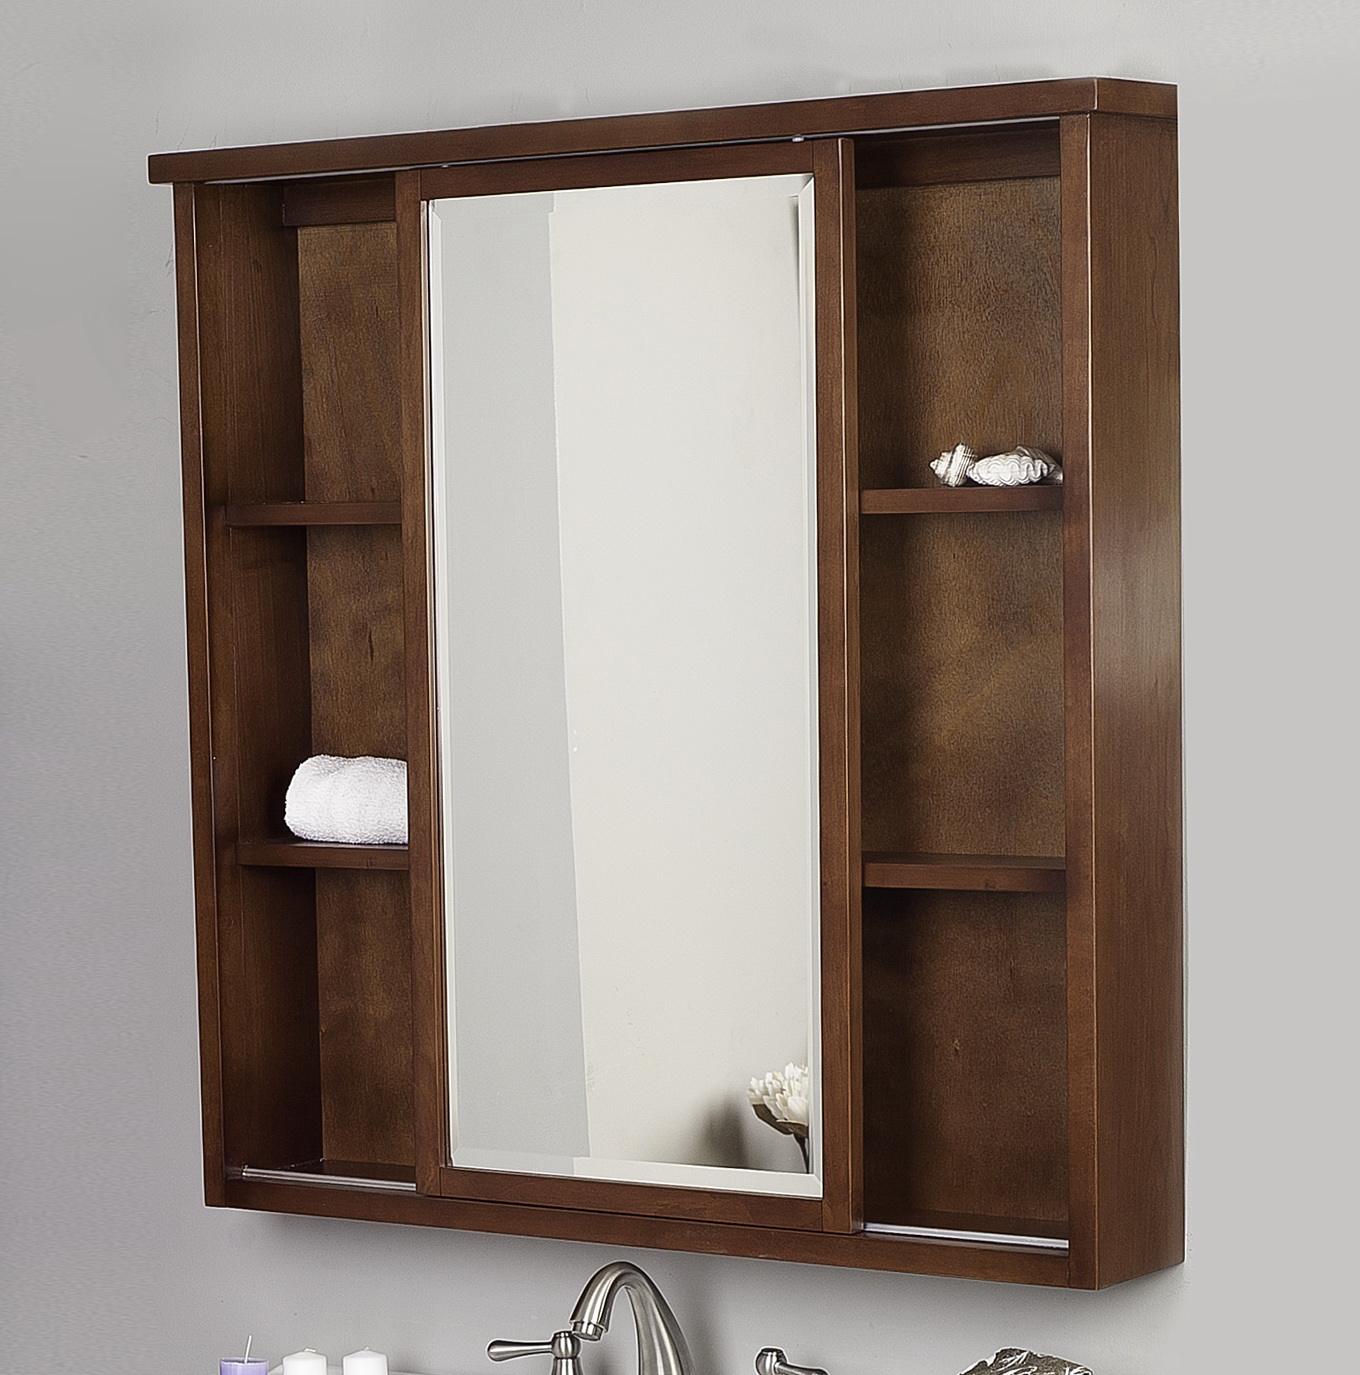 Mirrored Medicine Cabinets Lowes Home Design Ideas